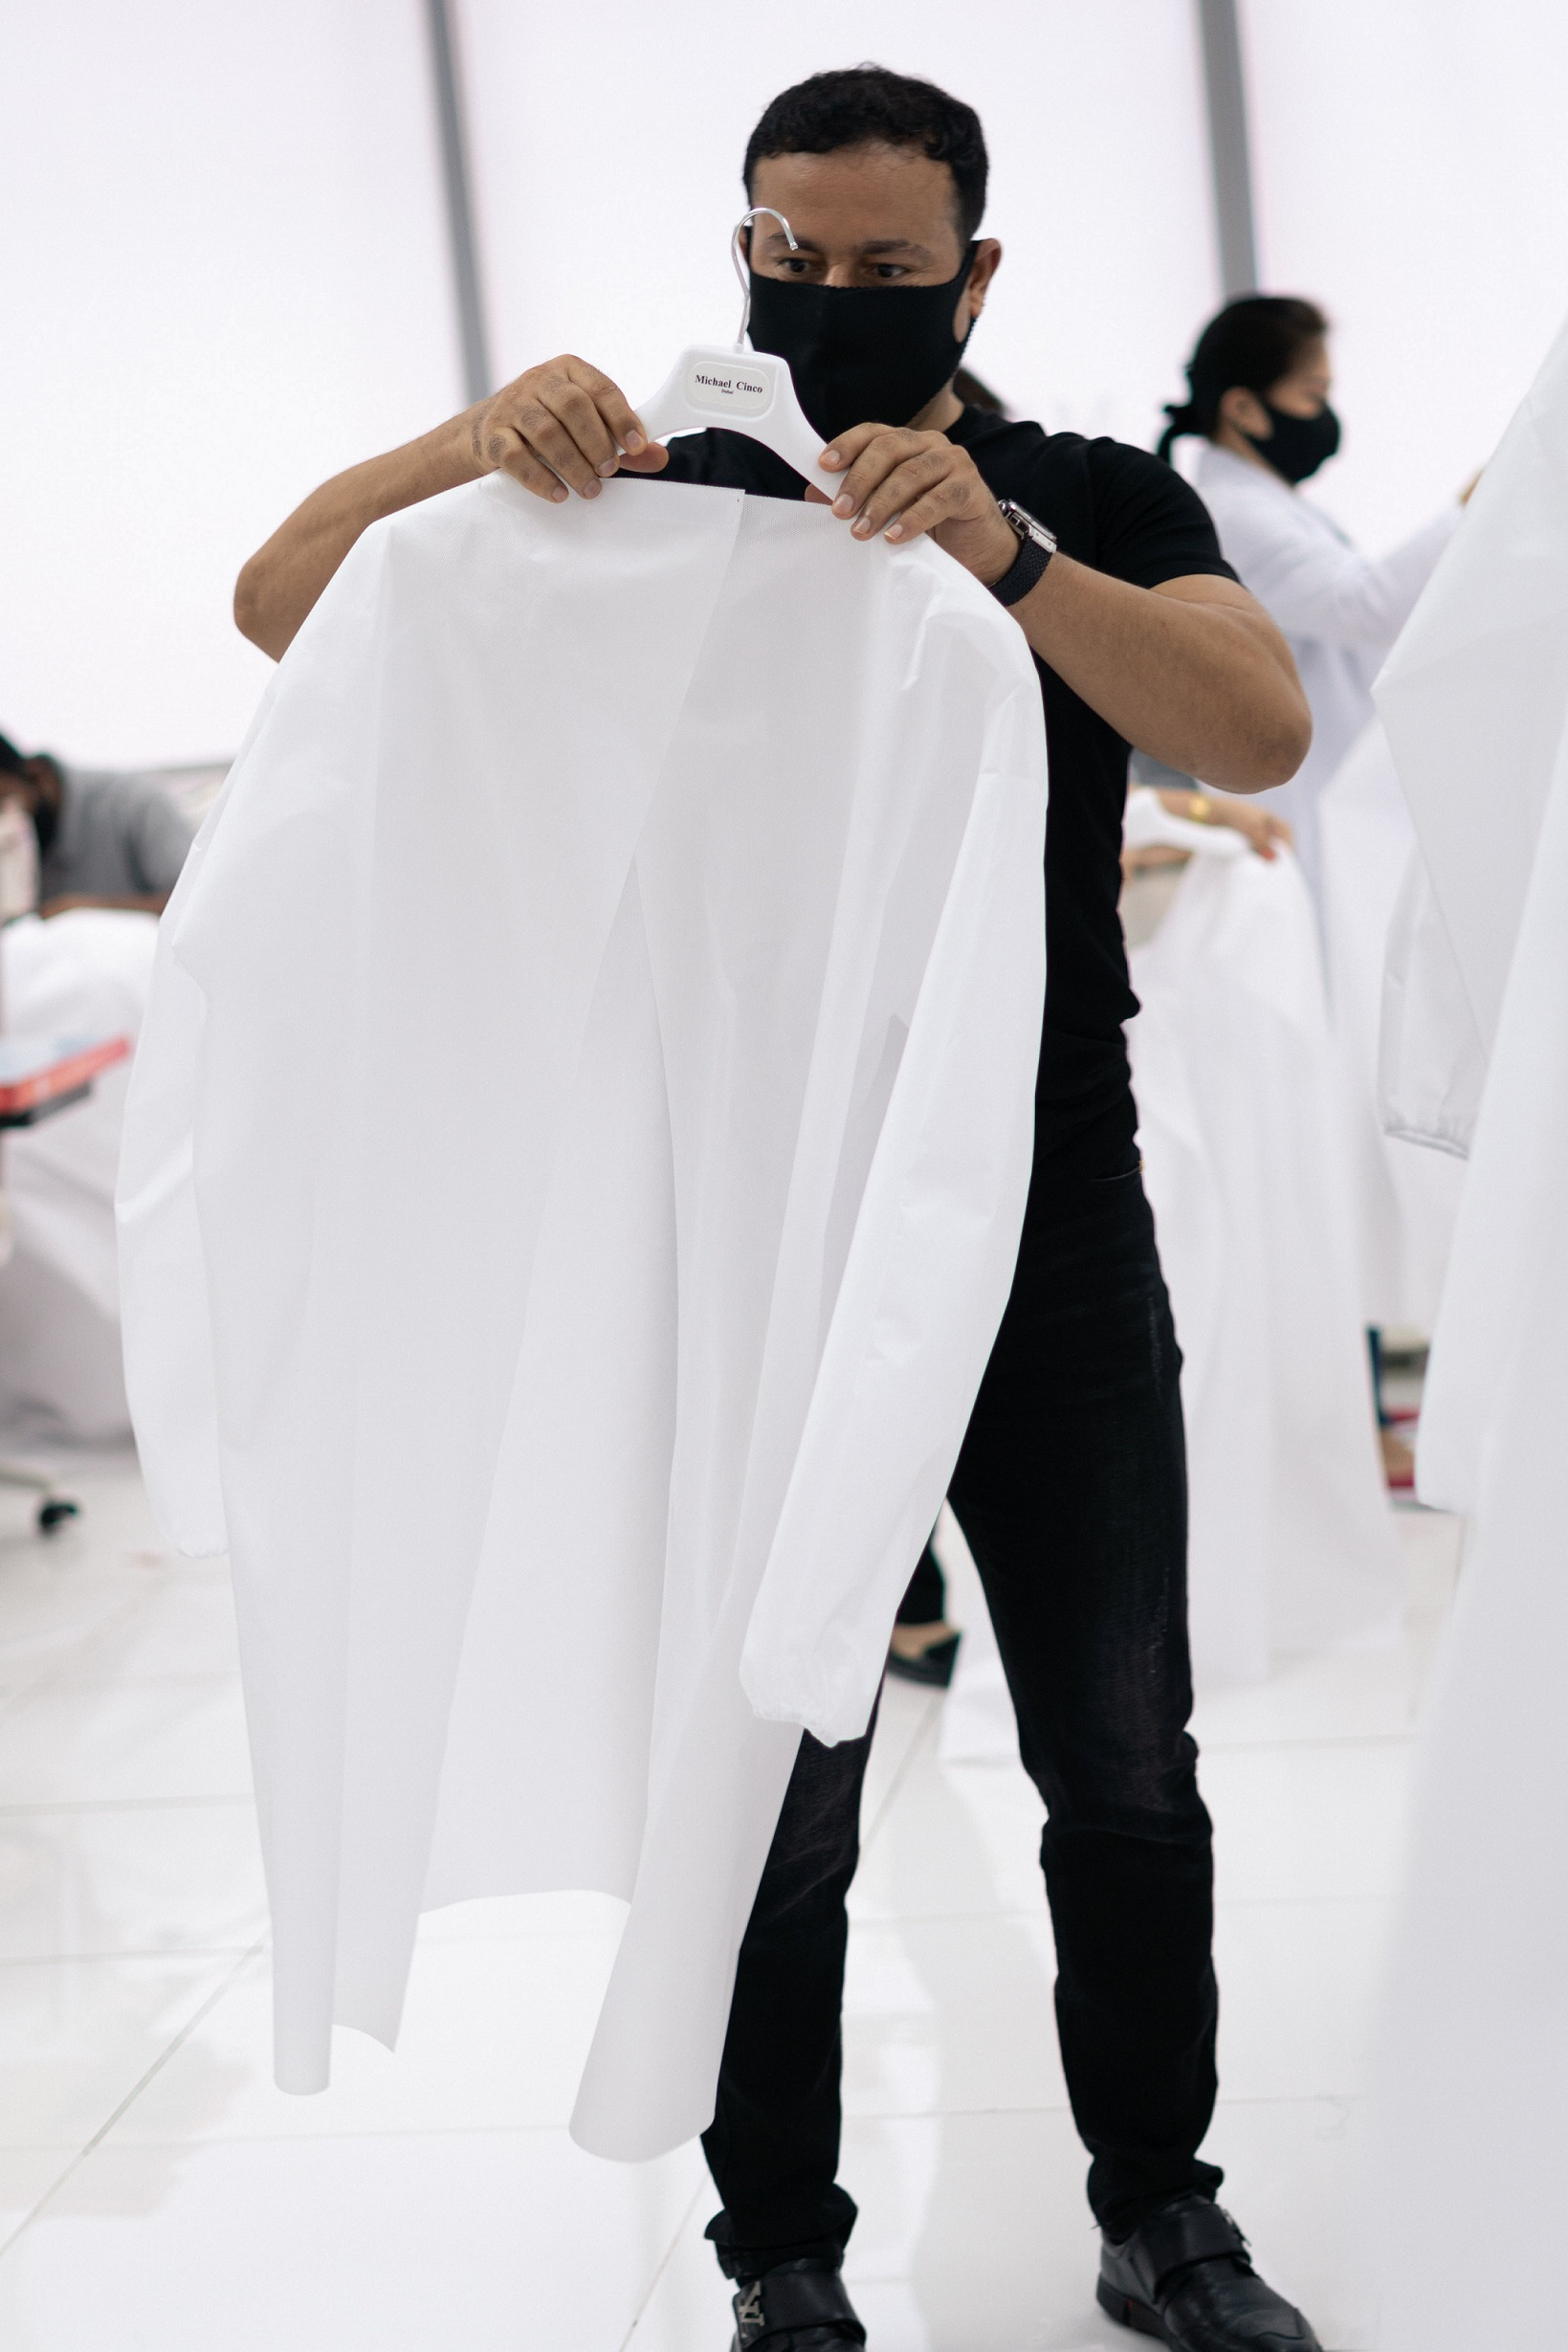 Seven Designers From D3 Join The Initiative To Produce Medical Clothing For Frontline Workers Design Middle East